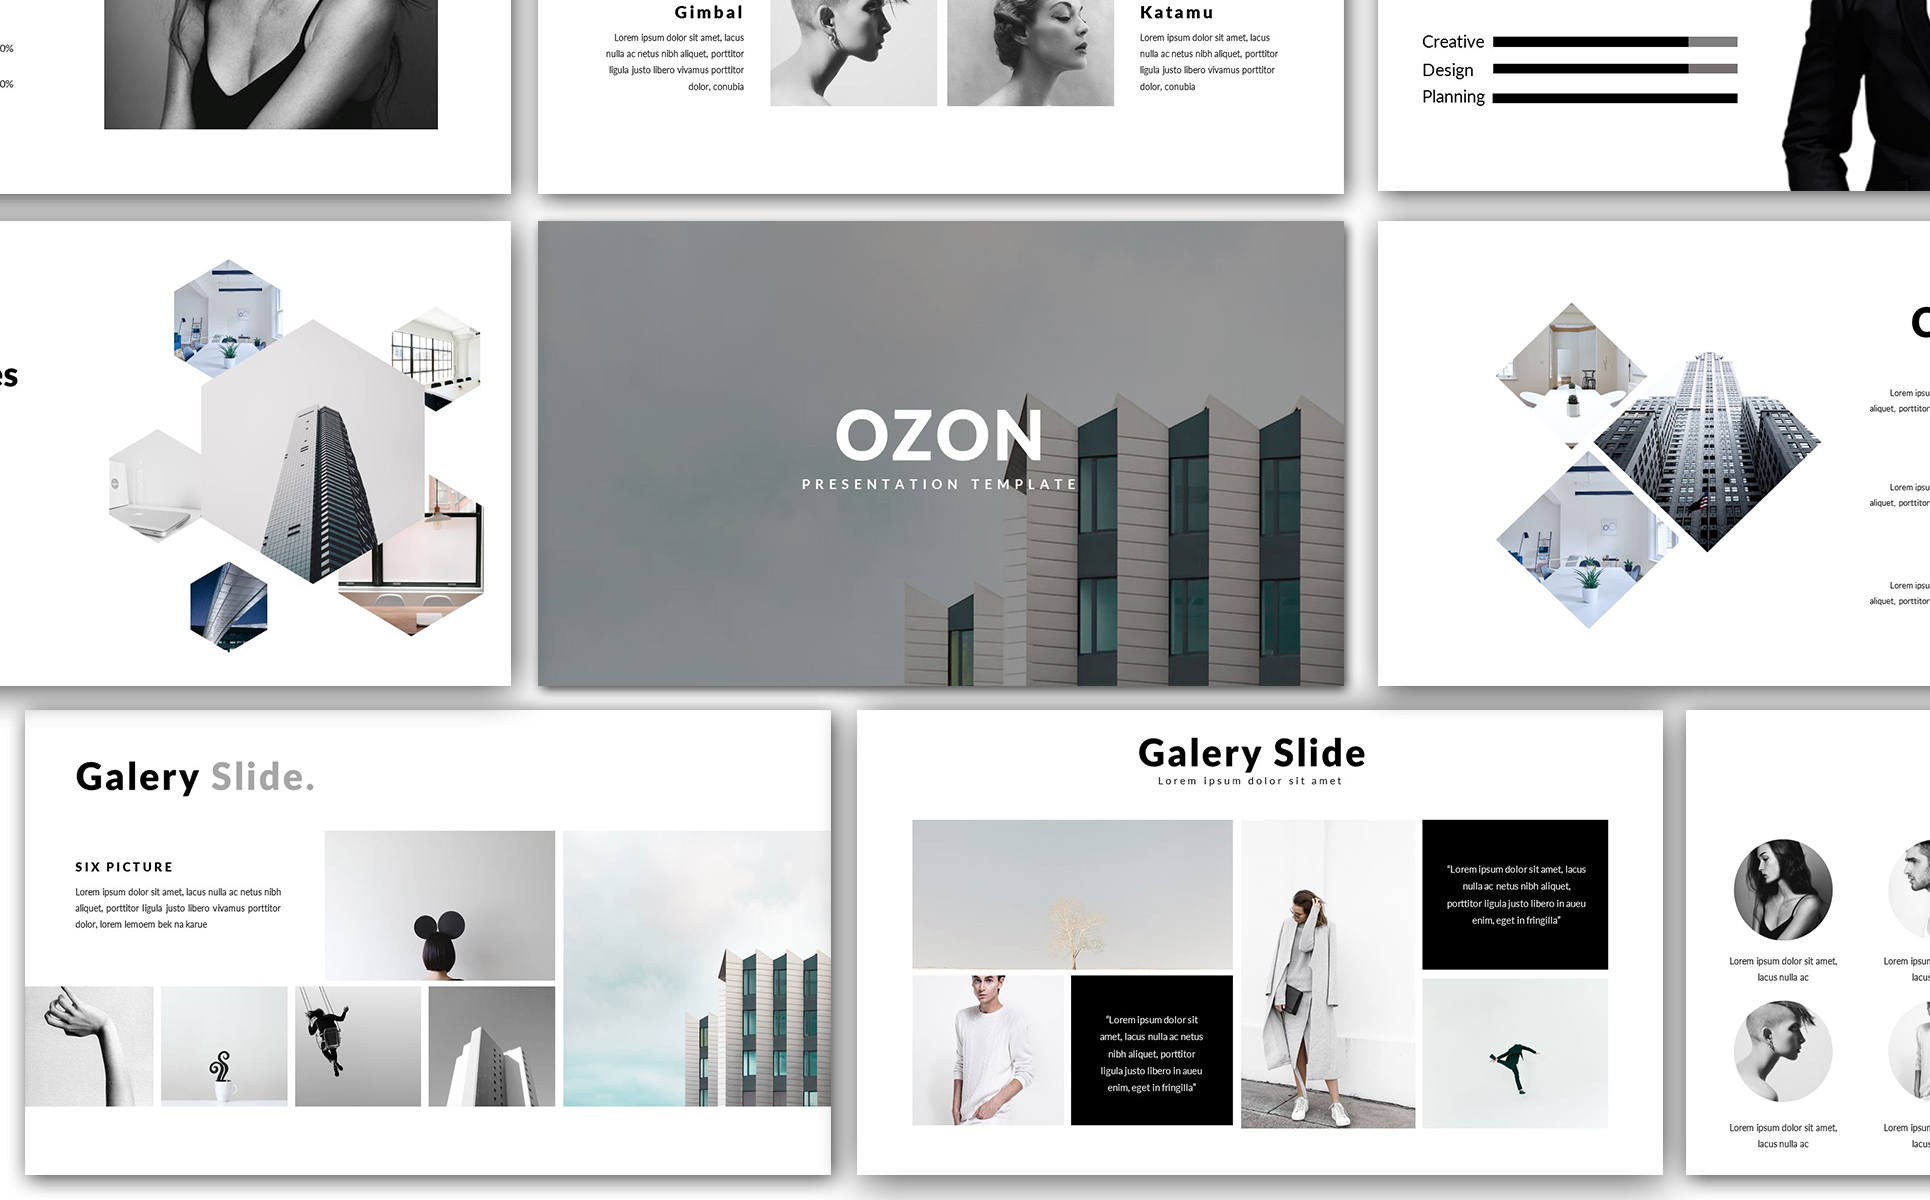 ozon minimal powerpoint template #65924, Presentation templates